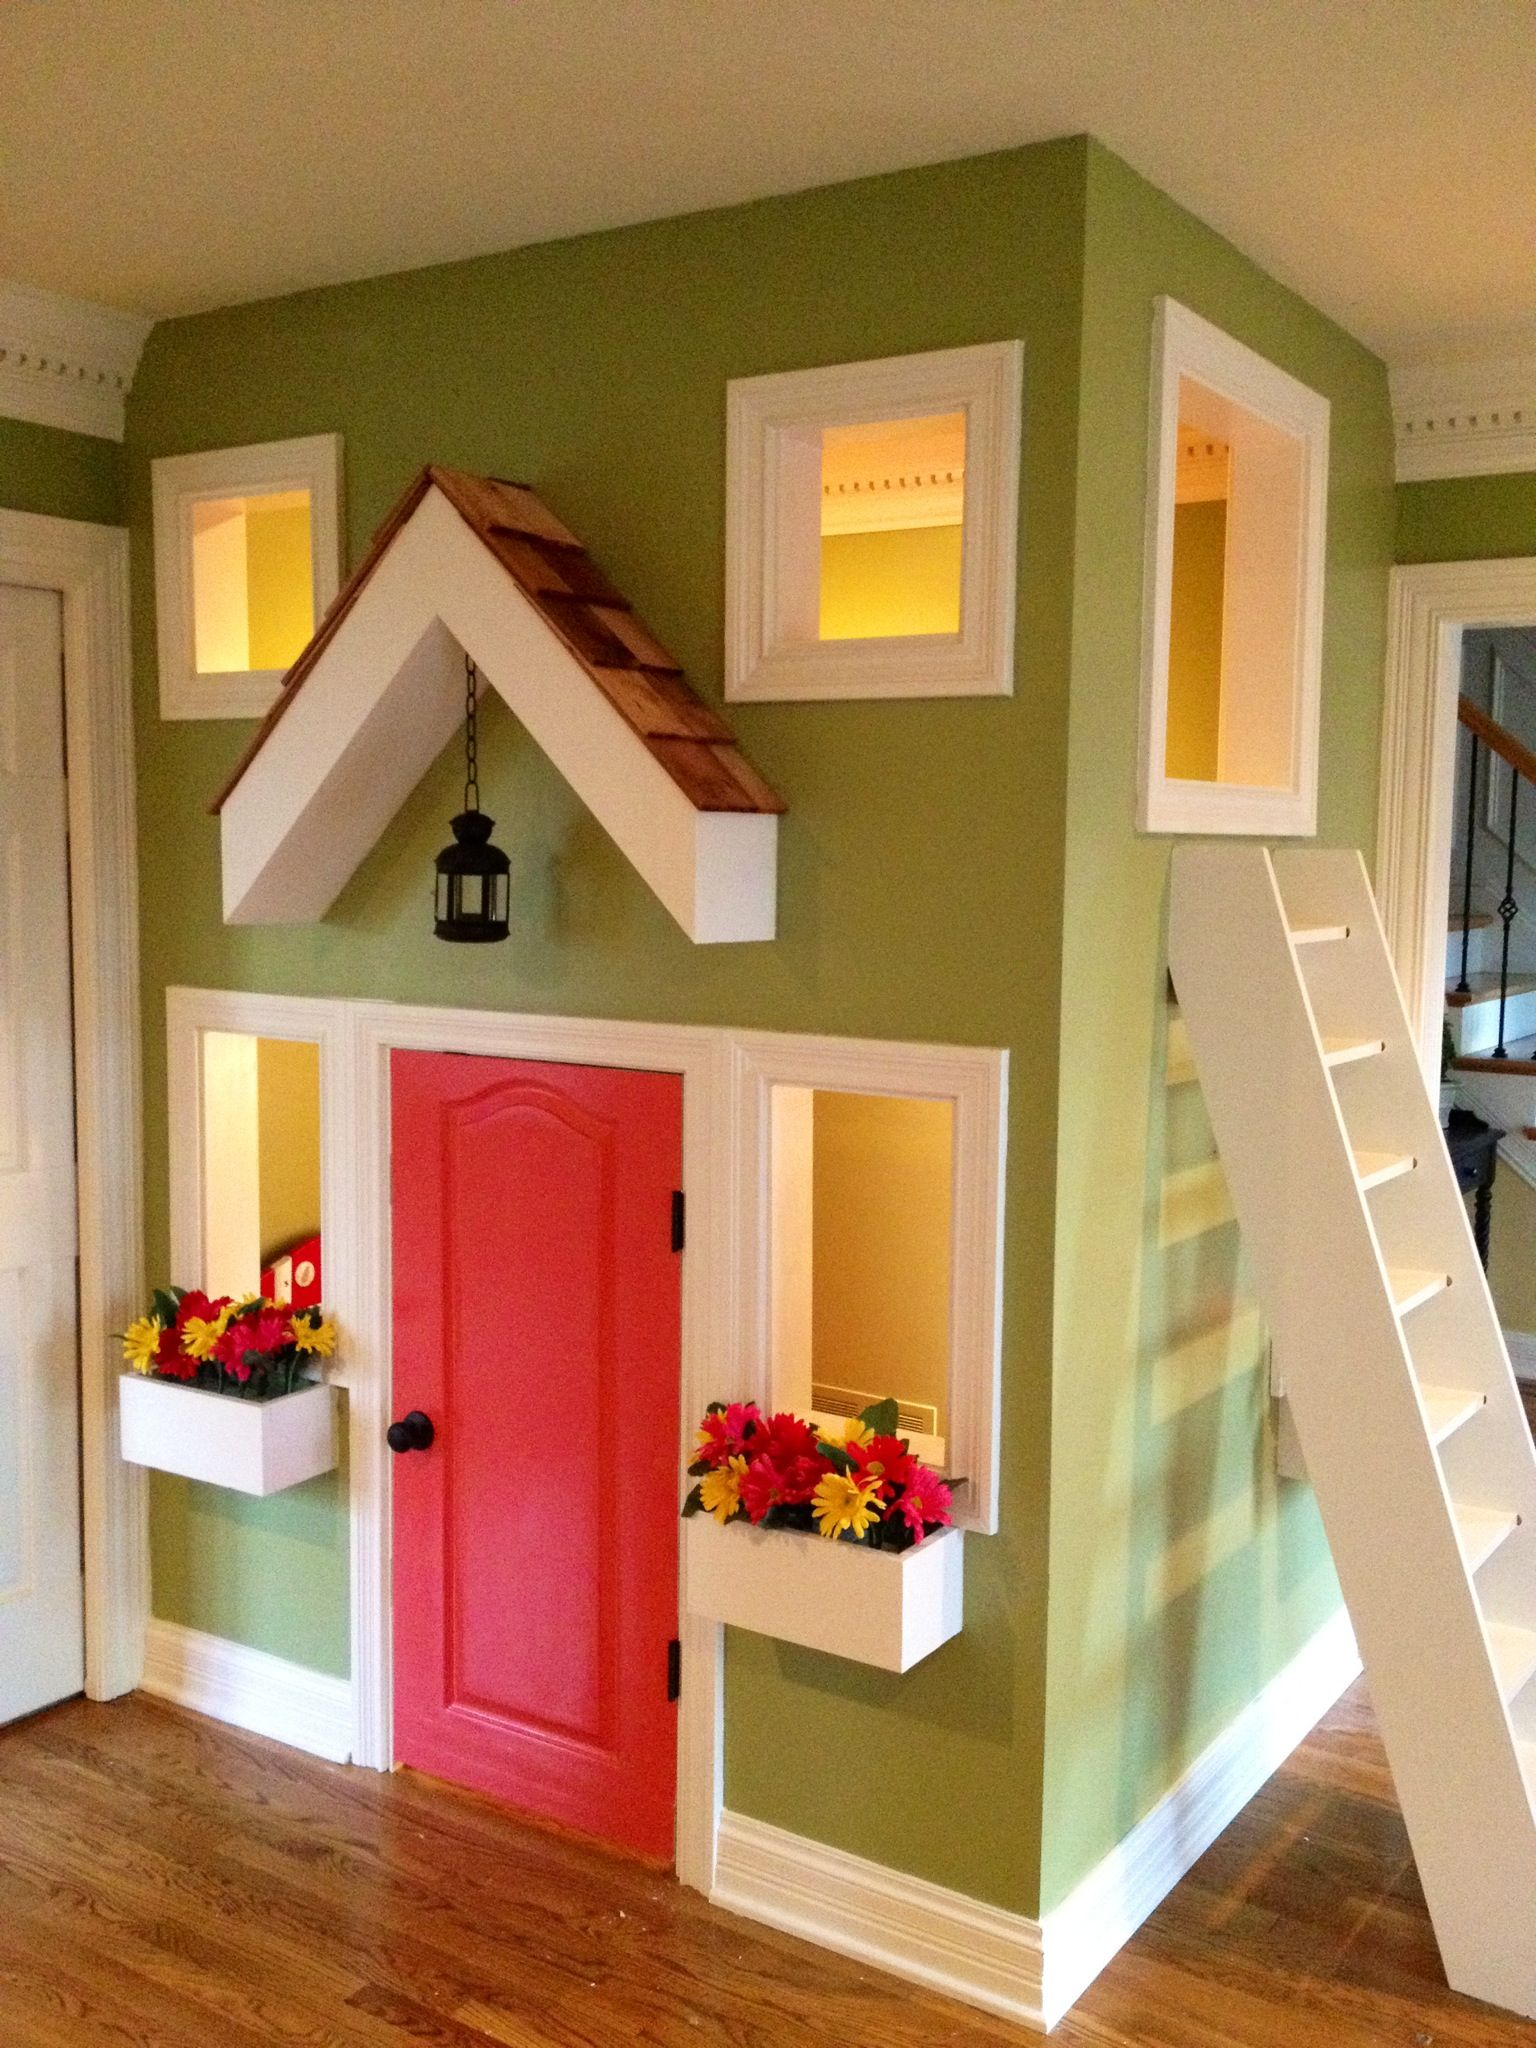 Best Indoor Two Story Playhouse This Would Be Unbelievable With His Bed Inside Kids Fun World 400 x 300